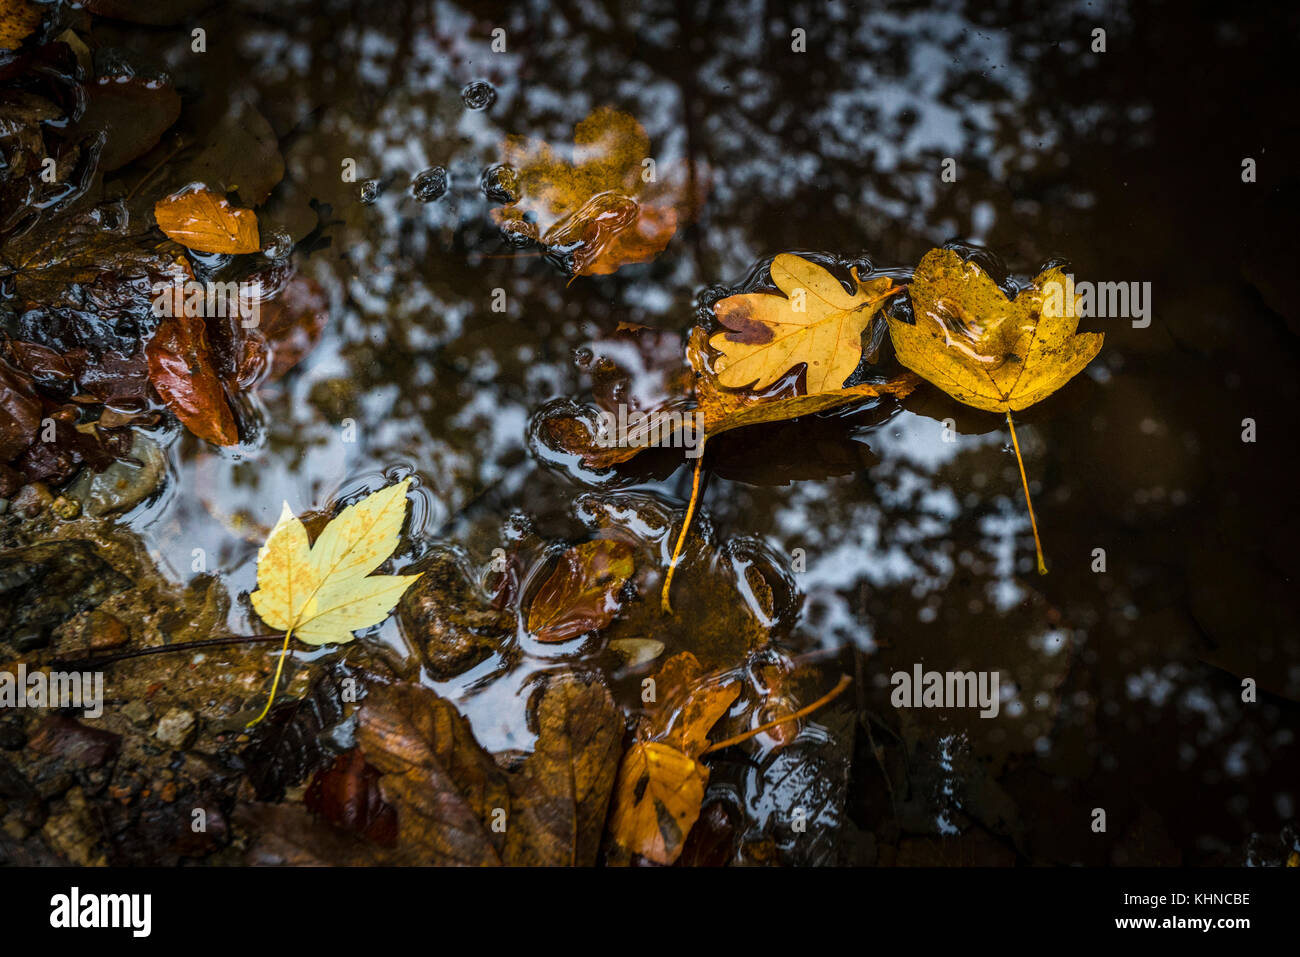 Autumn leaves in warm colors floating in a puddle with forest reflections in the water - Stock Image